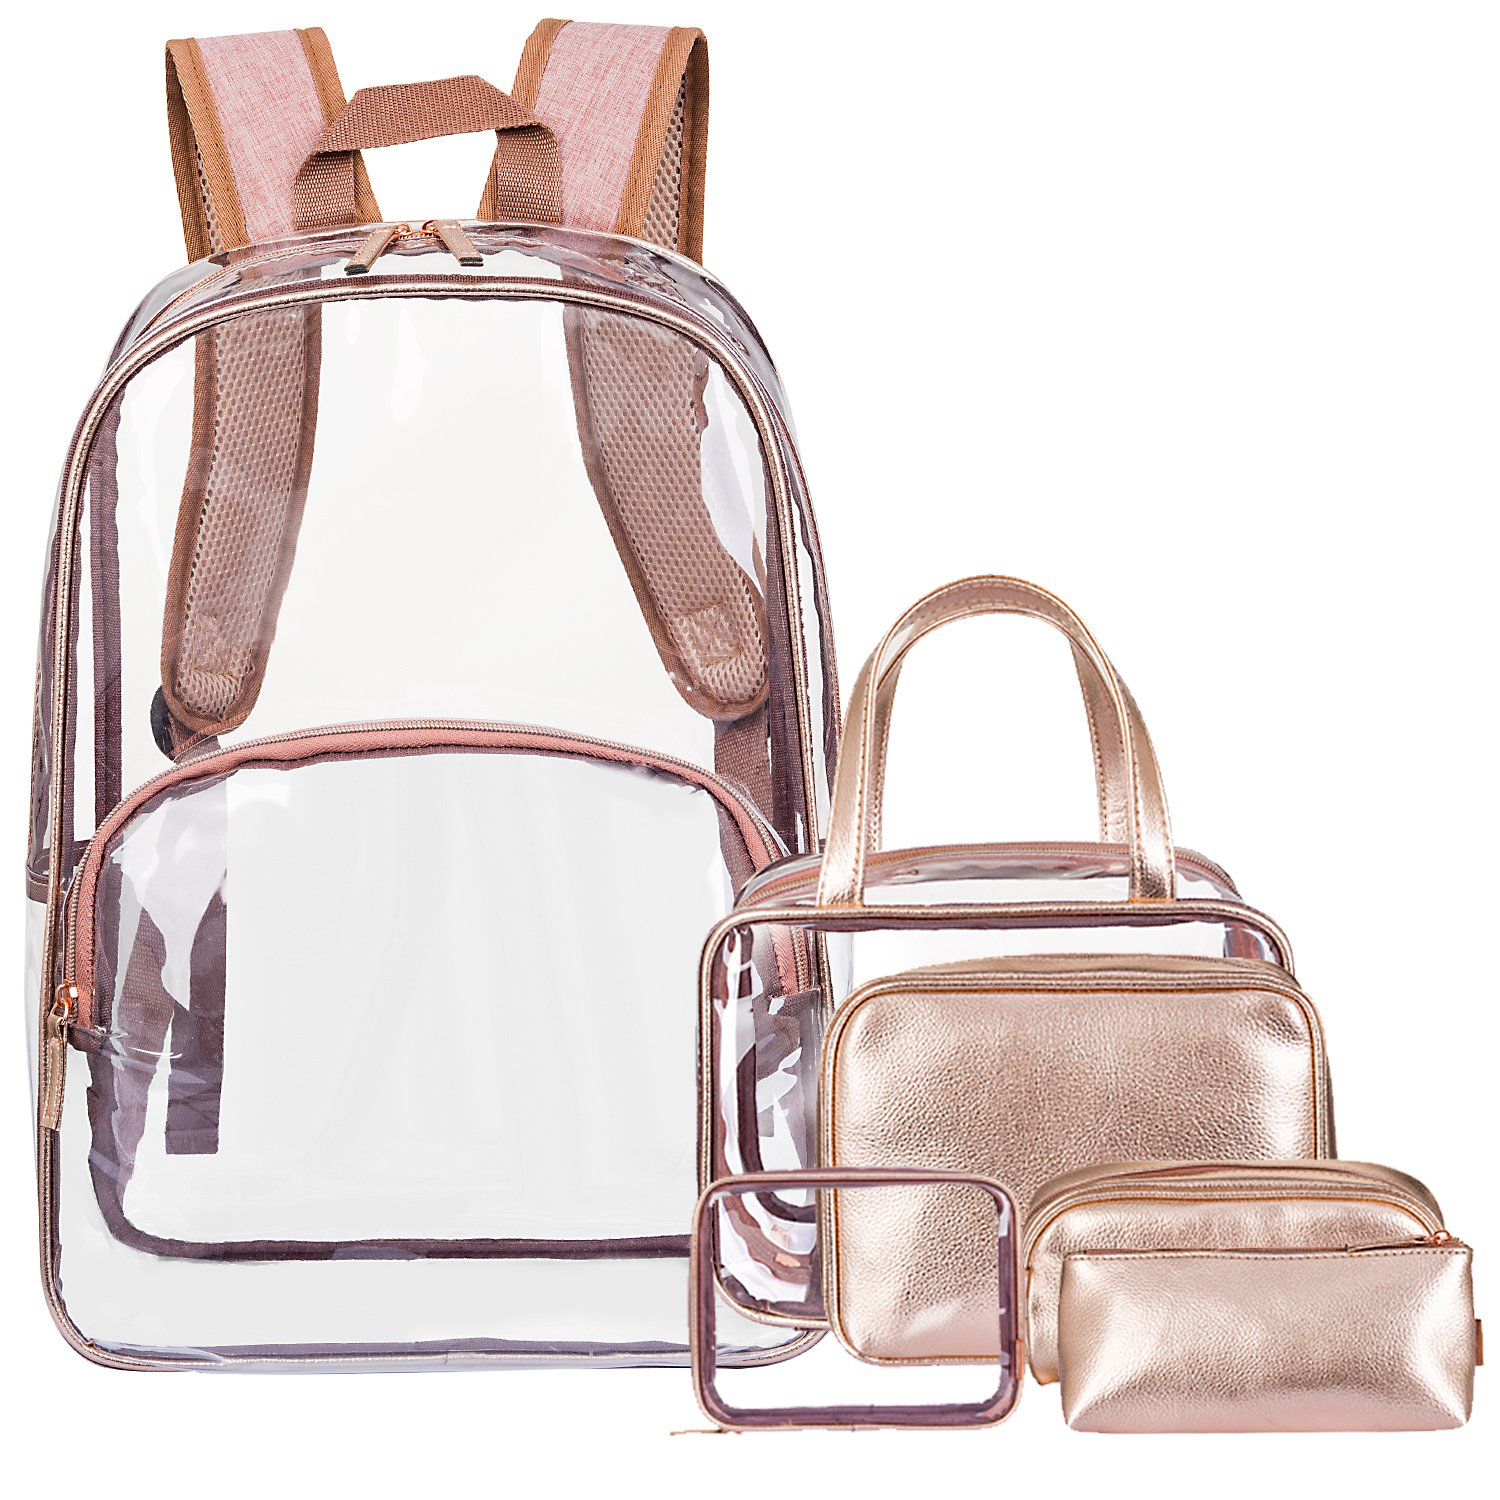 NiceEbag 6 in 1 Clear Backpack with Cosmetic Bag & Case, Clear Transparent PVC School Backpack Outdoor Bookbag Portable Travel Toiletry Bag Makeup Quart Luggage Organizer (Rose Gold)